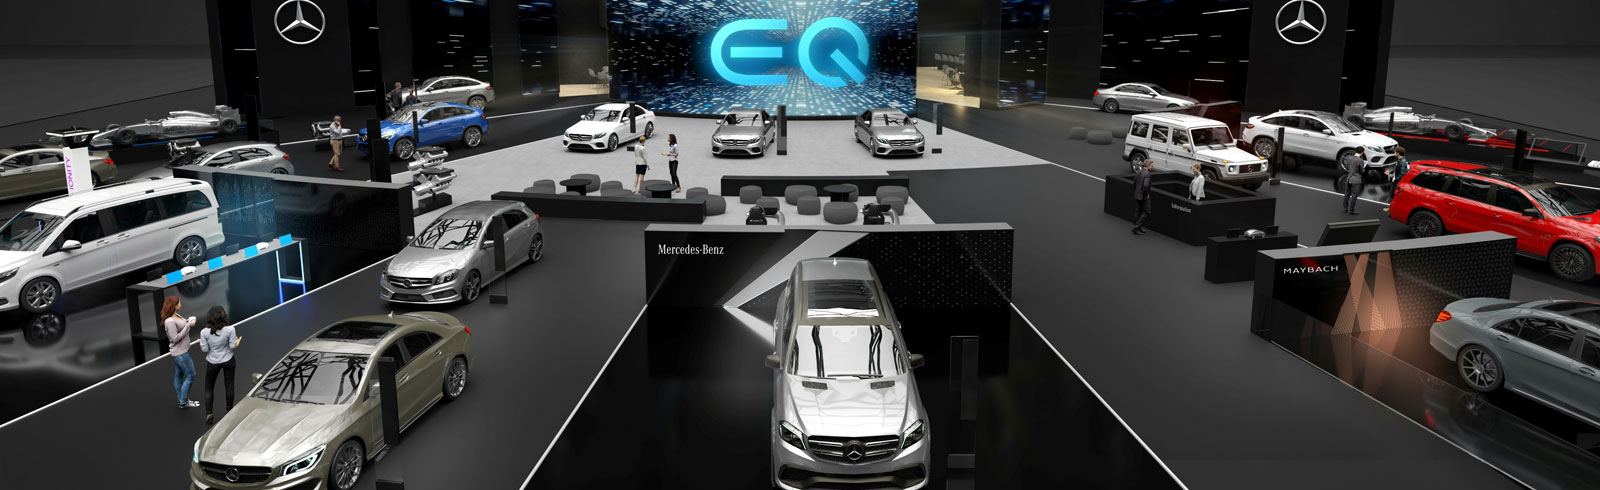 """Mercedes-Benz will showcase the VISION AVTR at the """"Meet Mercedes"""" event in Geneva"""